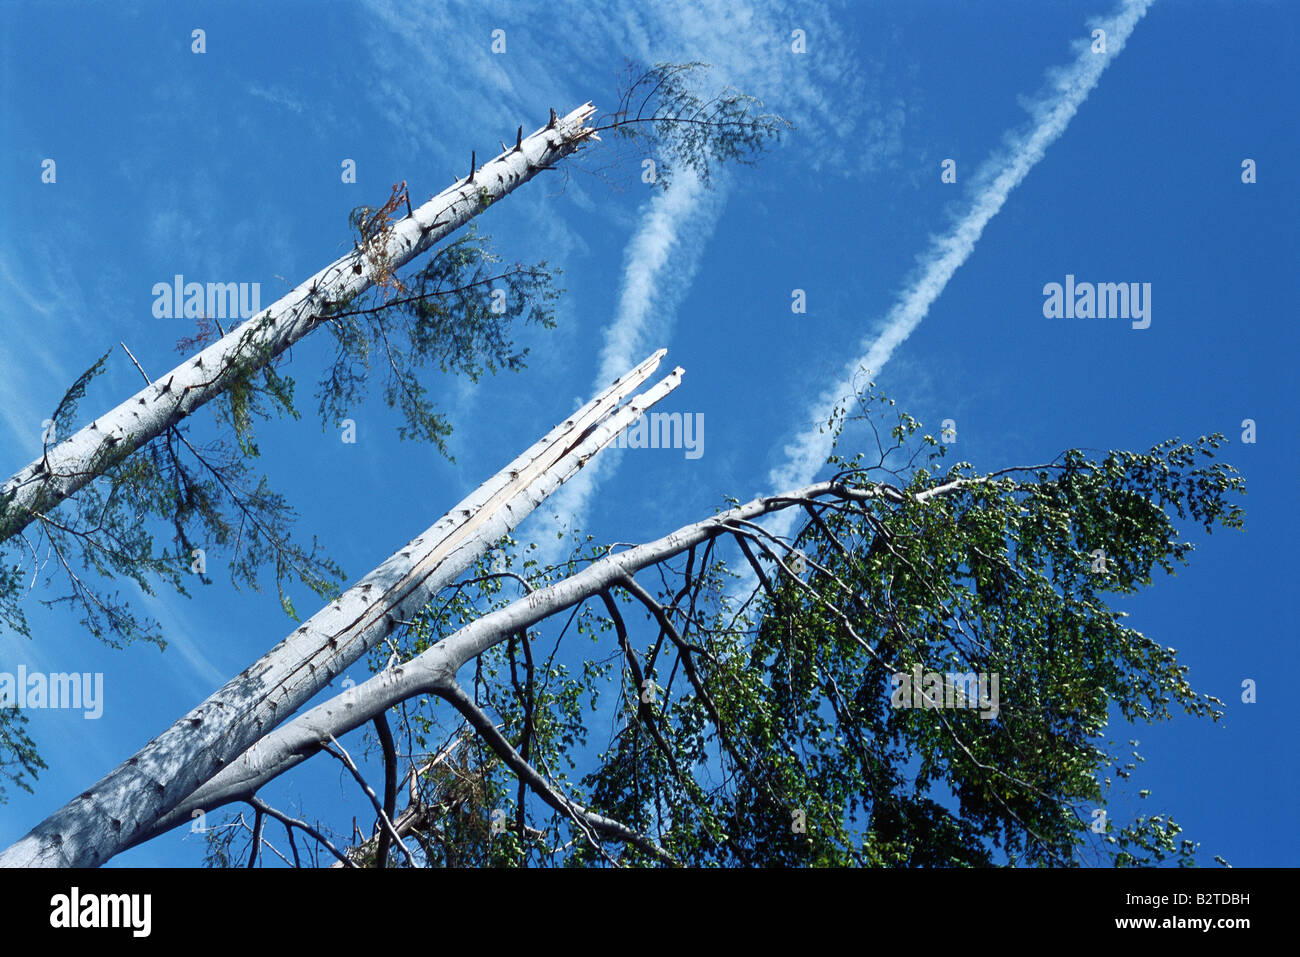 Damaged trees and blue sky, low angle view - Stock Image